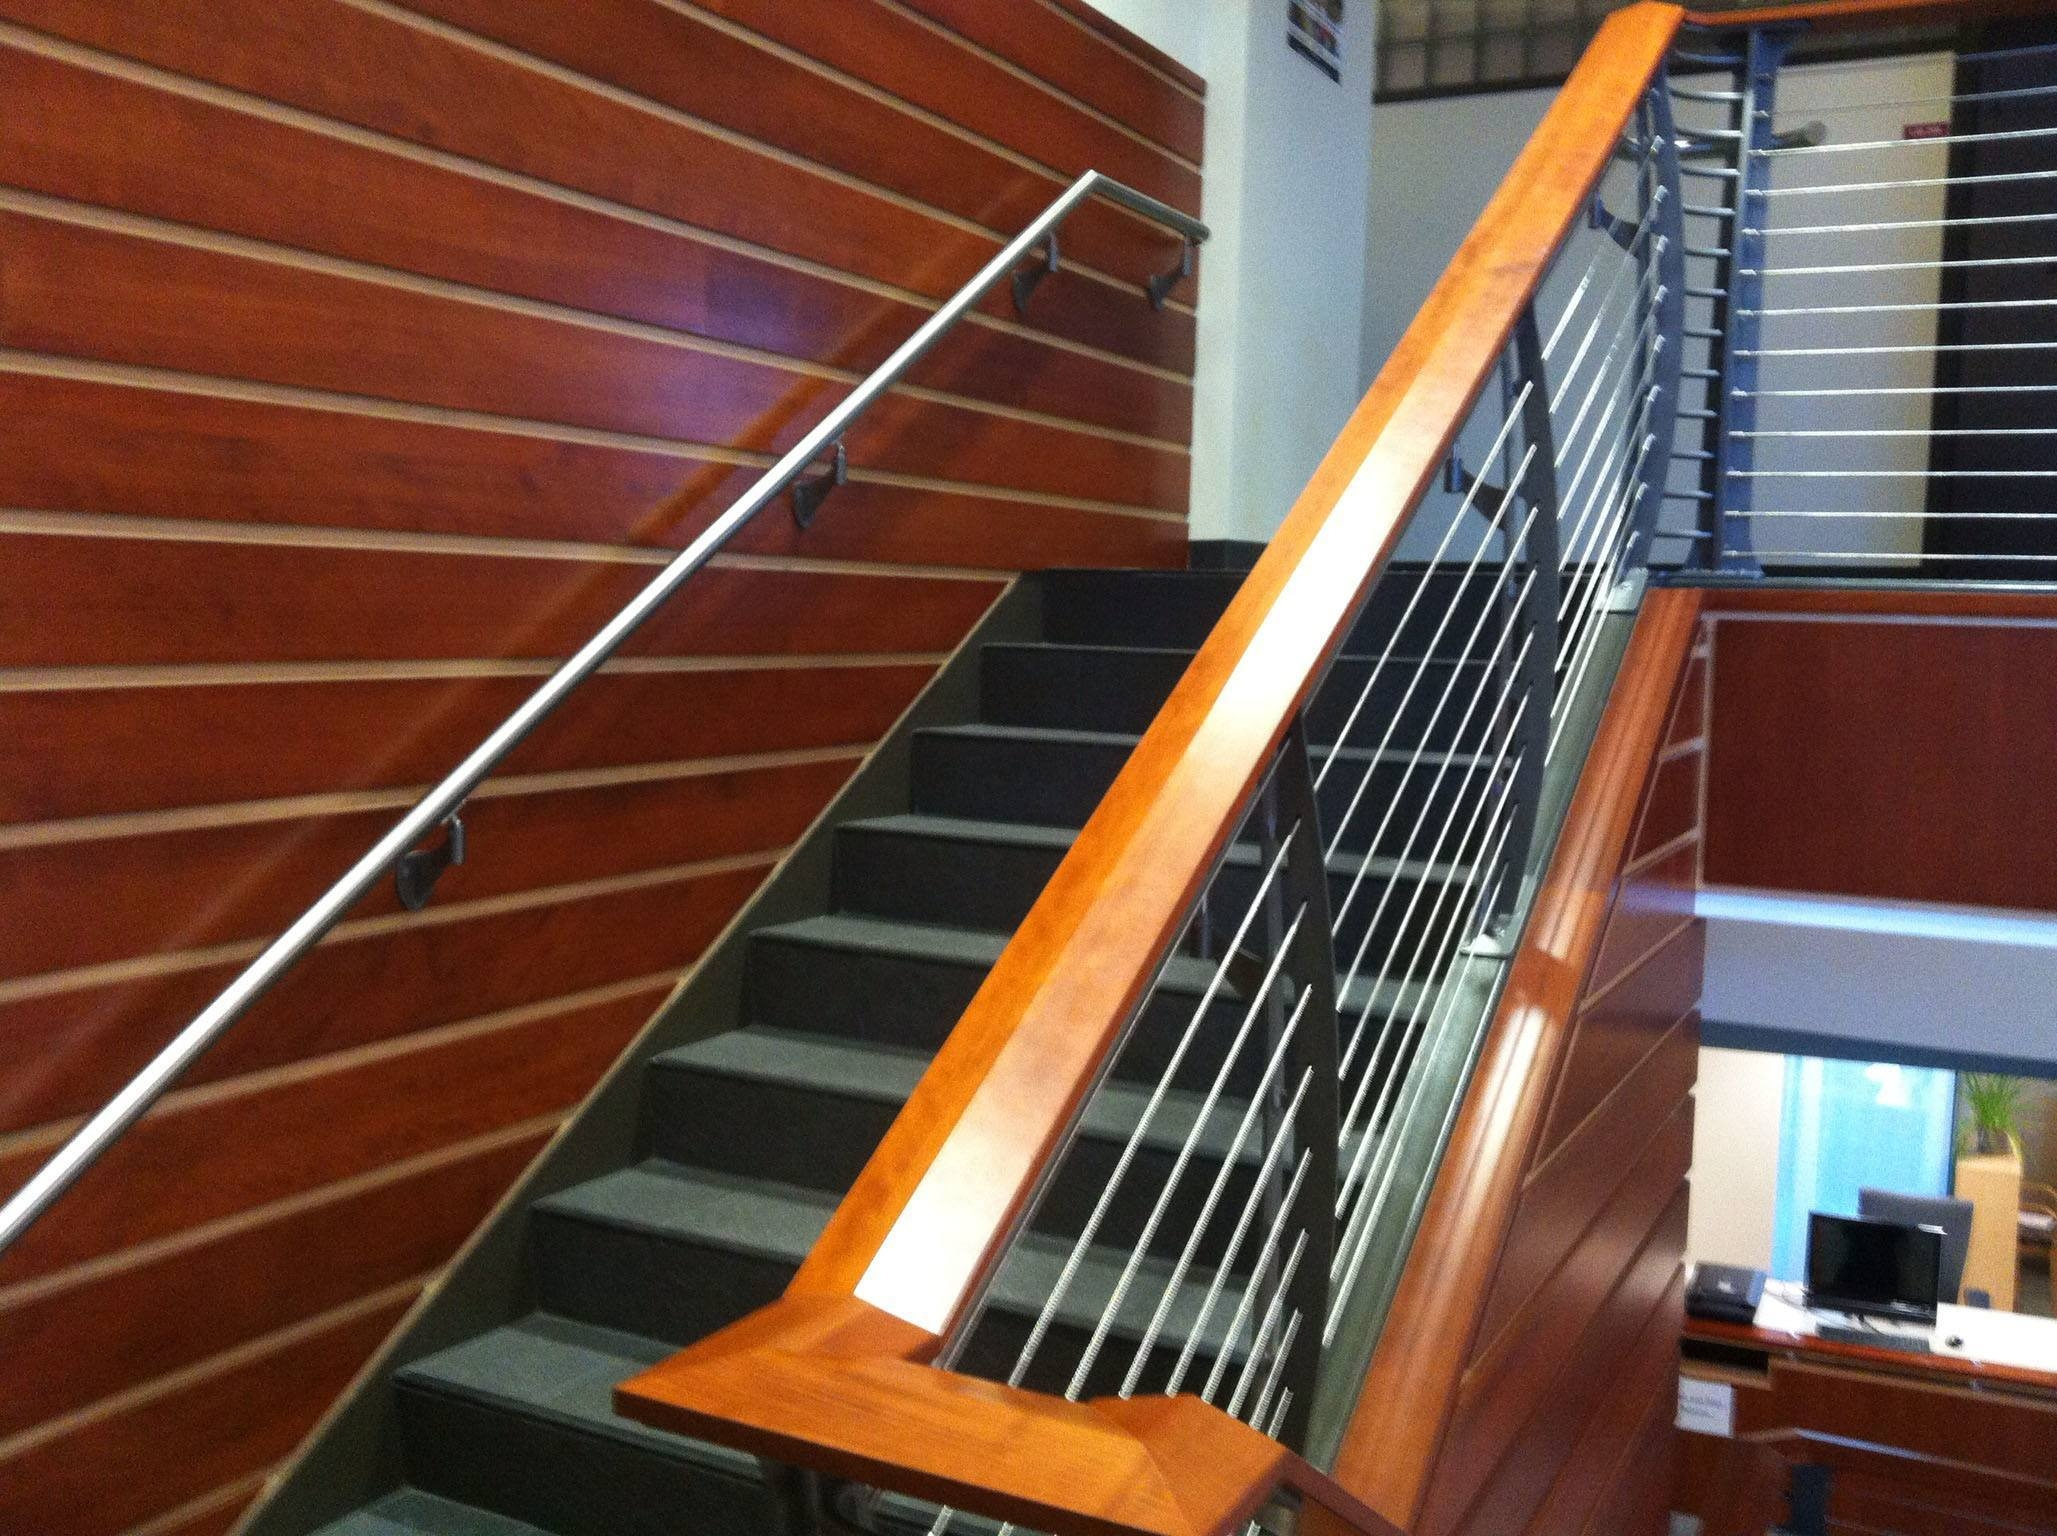 College Staircase With Cable Ada Railing Albany Ny Keuka Studios | Teak Wood Staircase Railings | Wood Frame | Hand | Sitout | Wood Carving | Lakdi